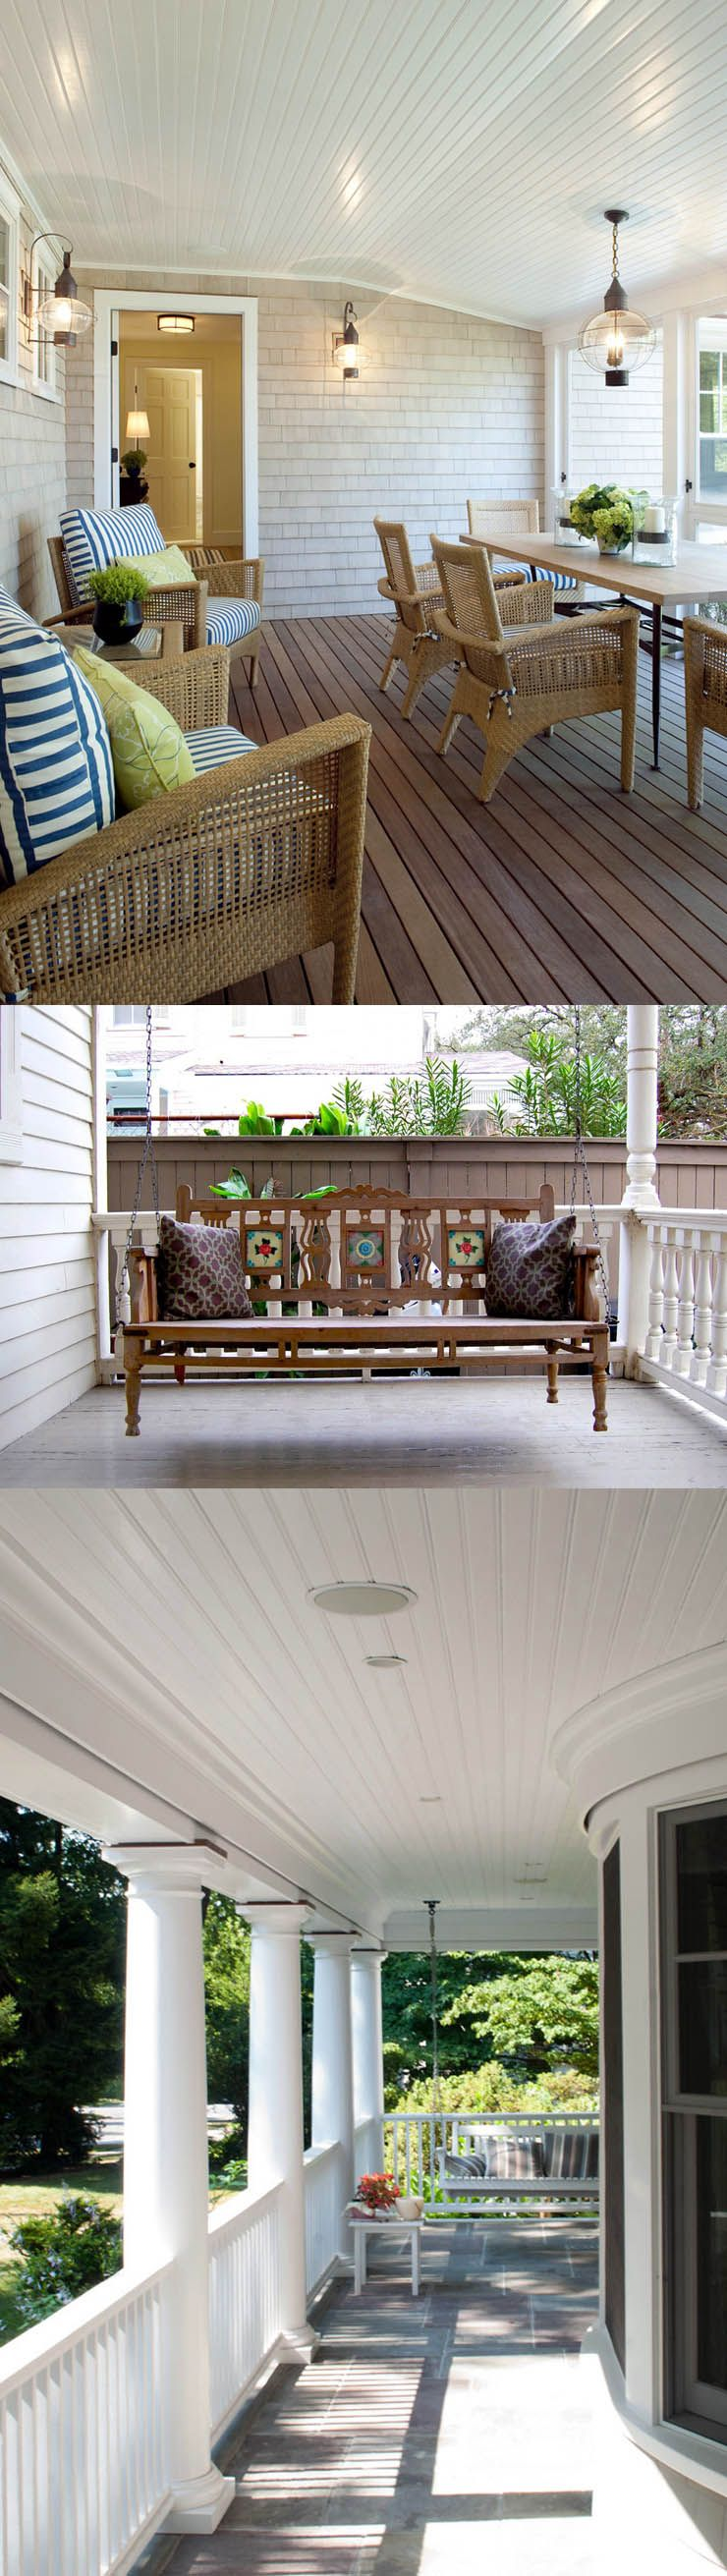 5 Back Porch Ideas & Designs For Small Homes | Porch ideas ... on Back Deck Ideas For Ranch Style Homes id=17073